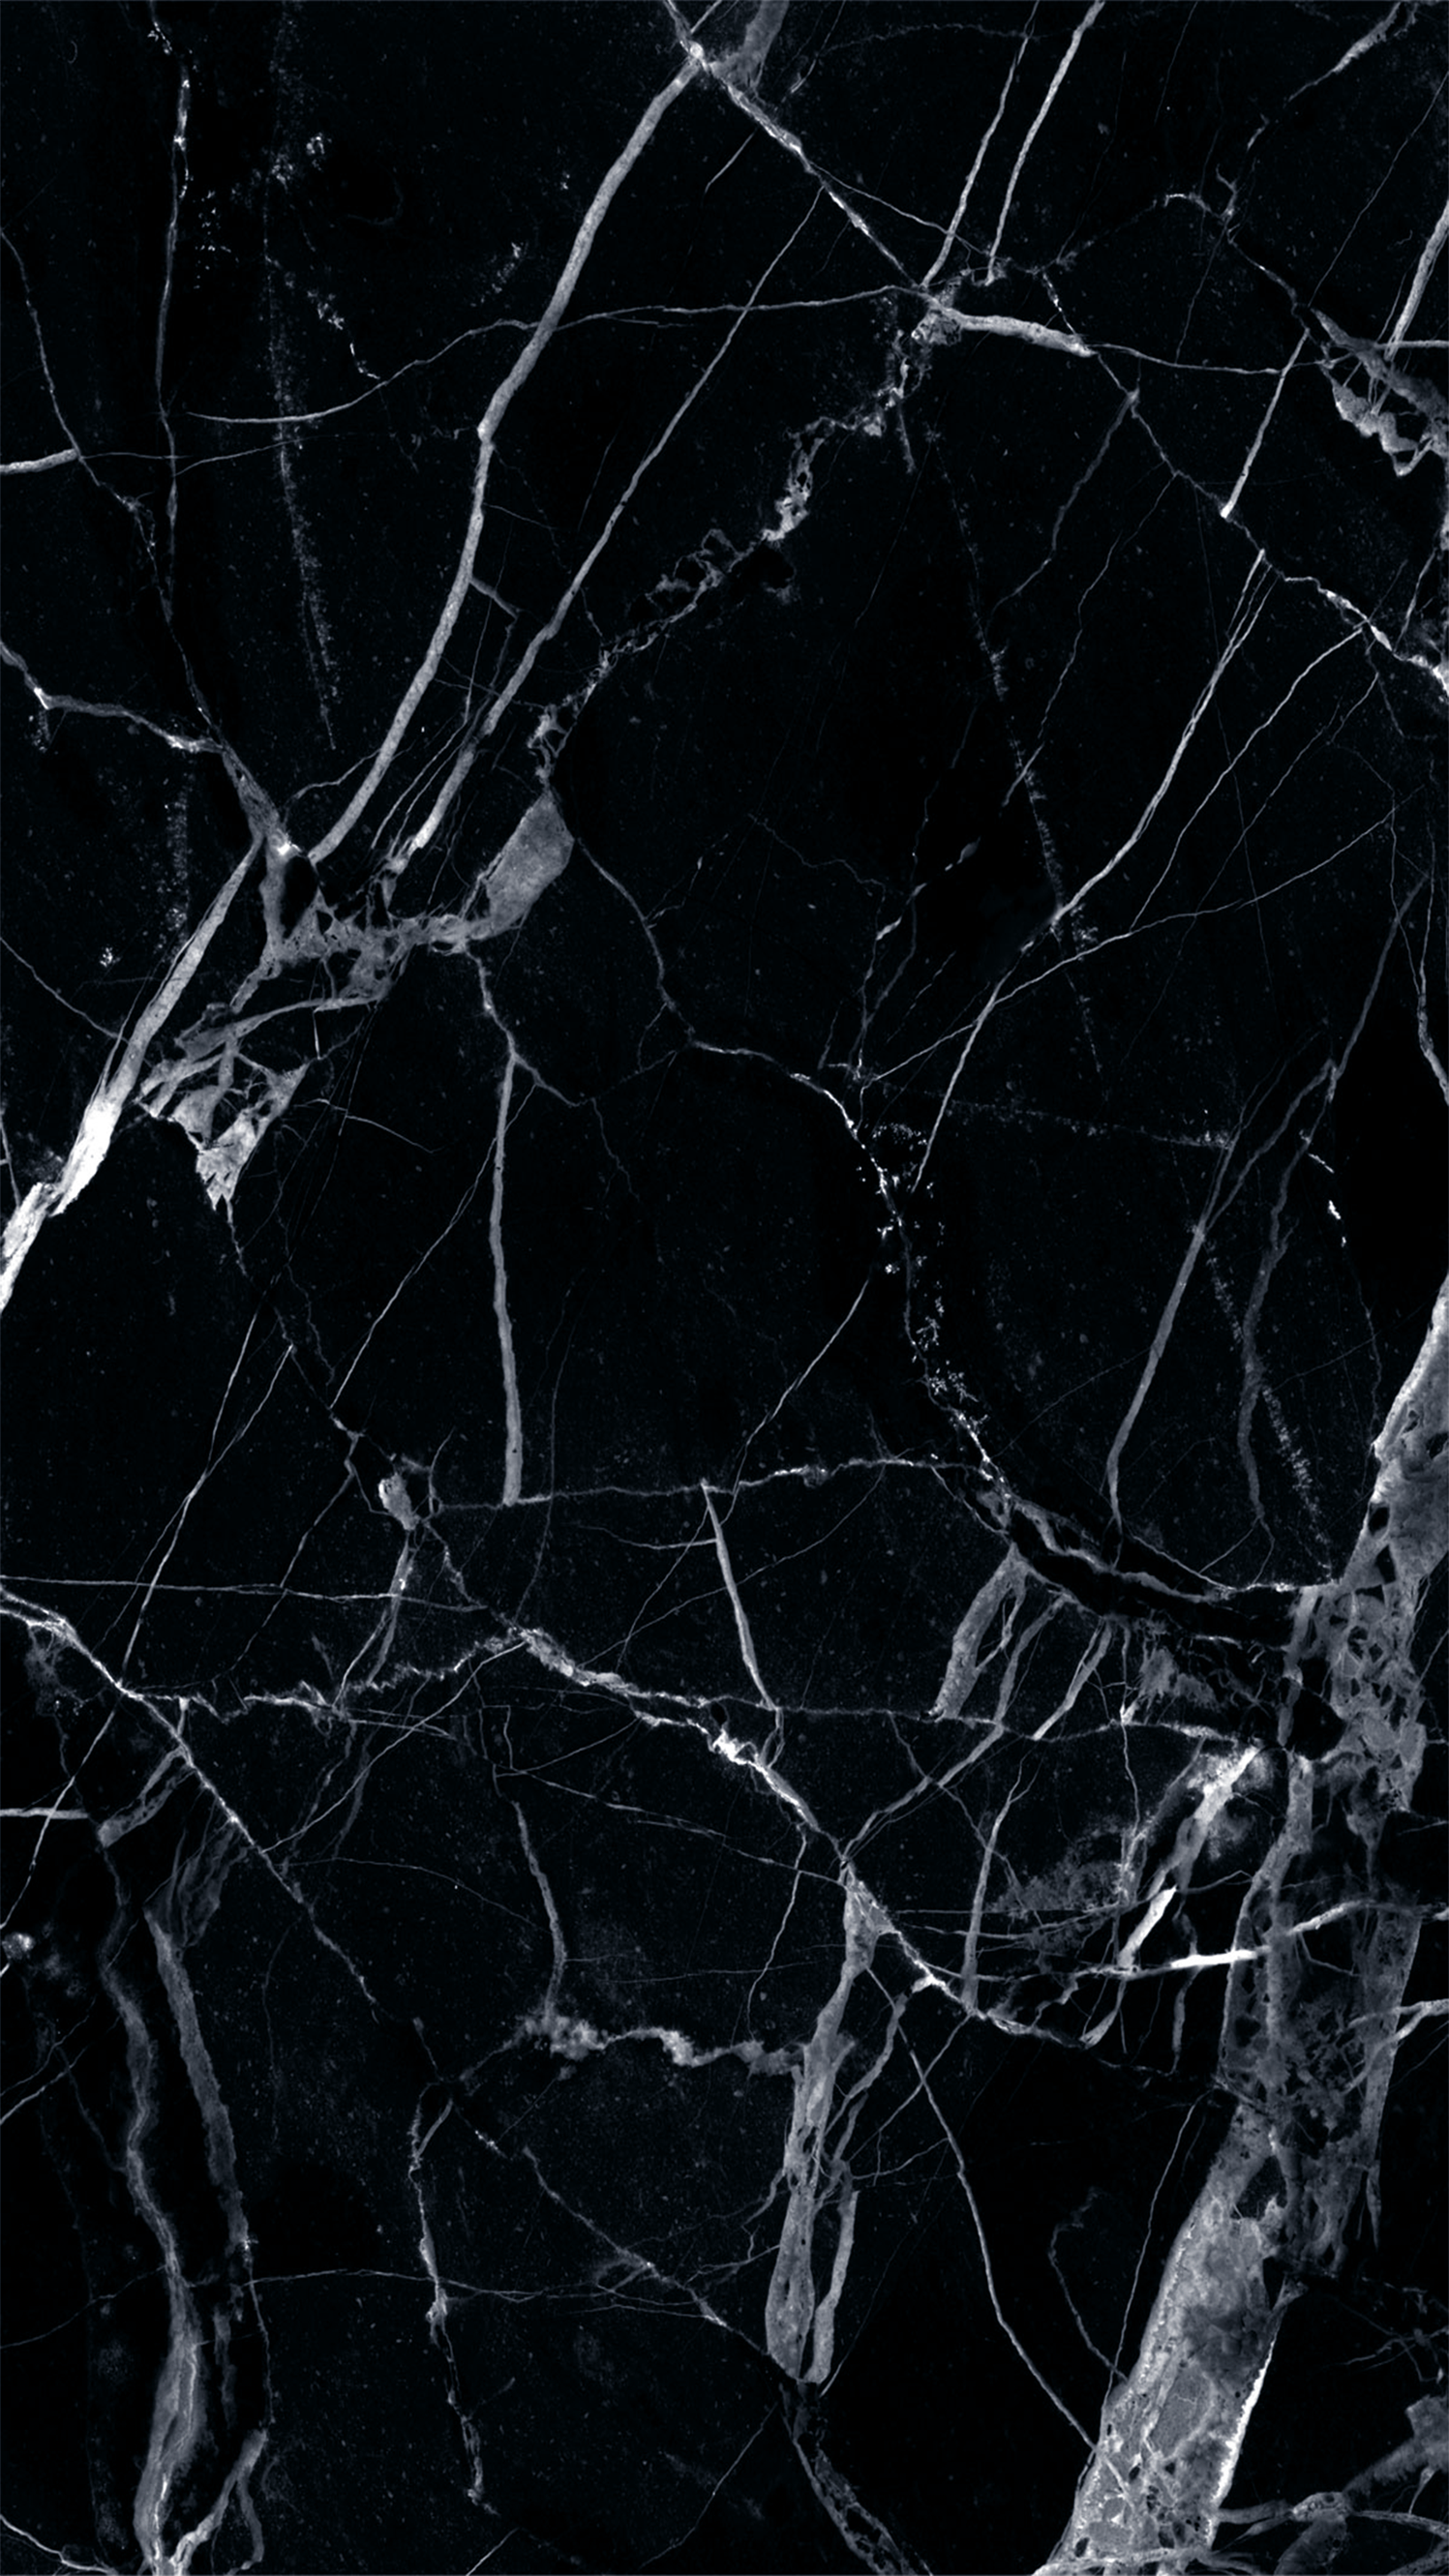 1497x2662 ZBM:71 - Marble Wallpaper, Marble HD Photos - 38 Free Large Images